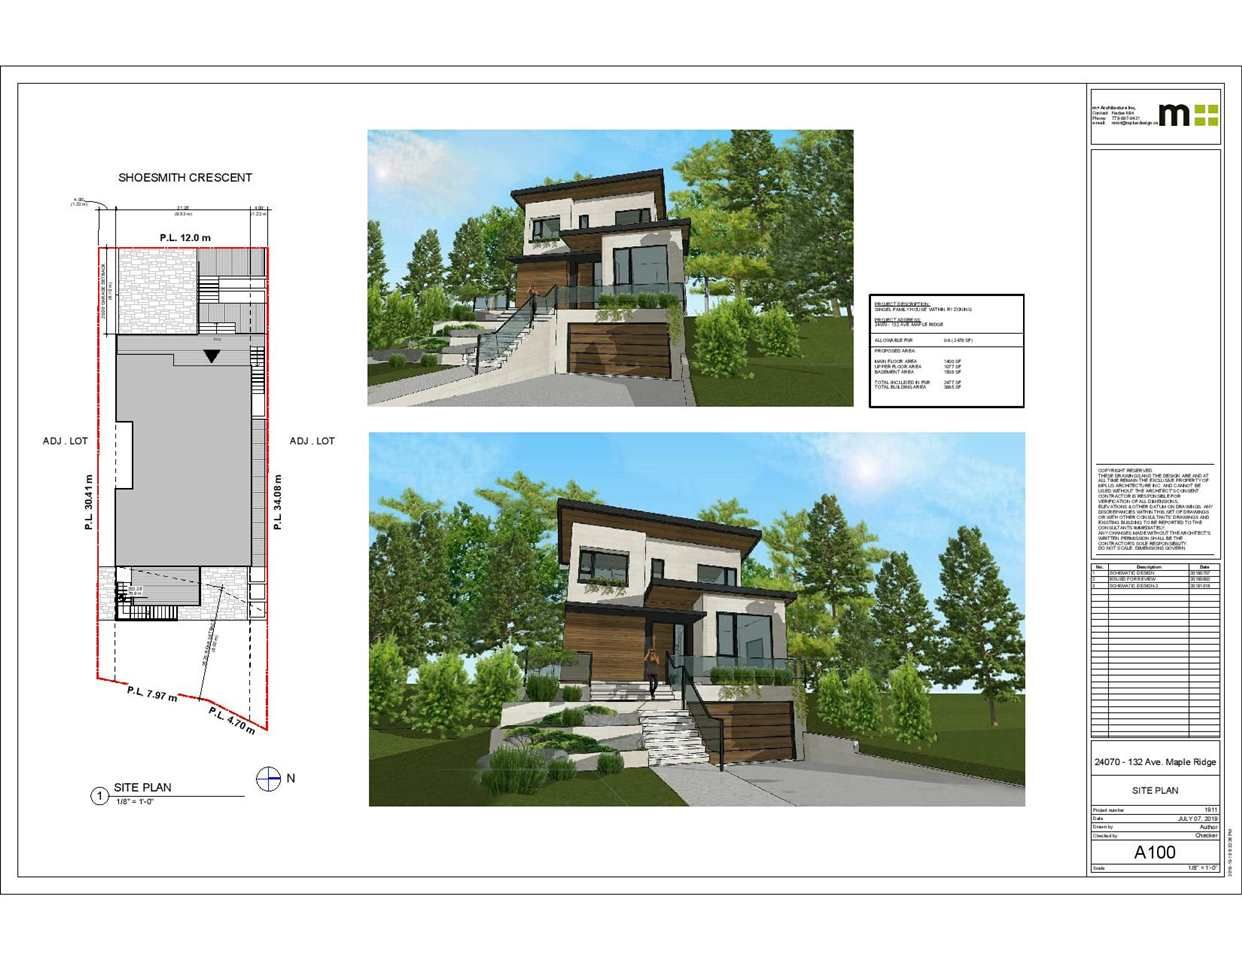 """Main Photo: 13184 SHOESMITH Loop in Maple Ridge: Silver Valley Land for sale in """"Silver Valley"""" : MLS®# R2467915"""